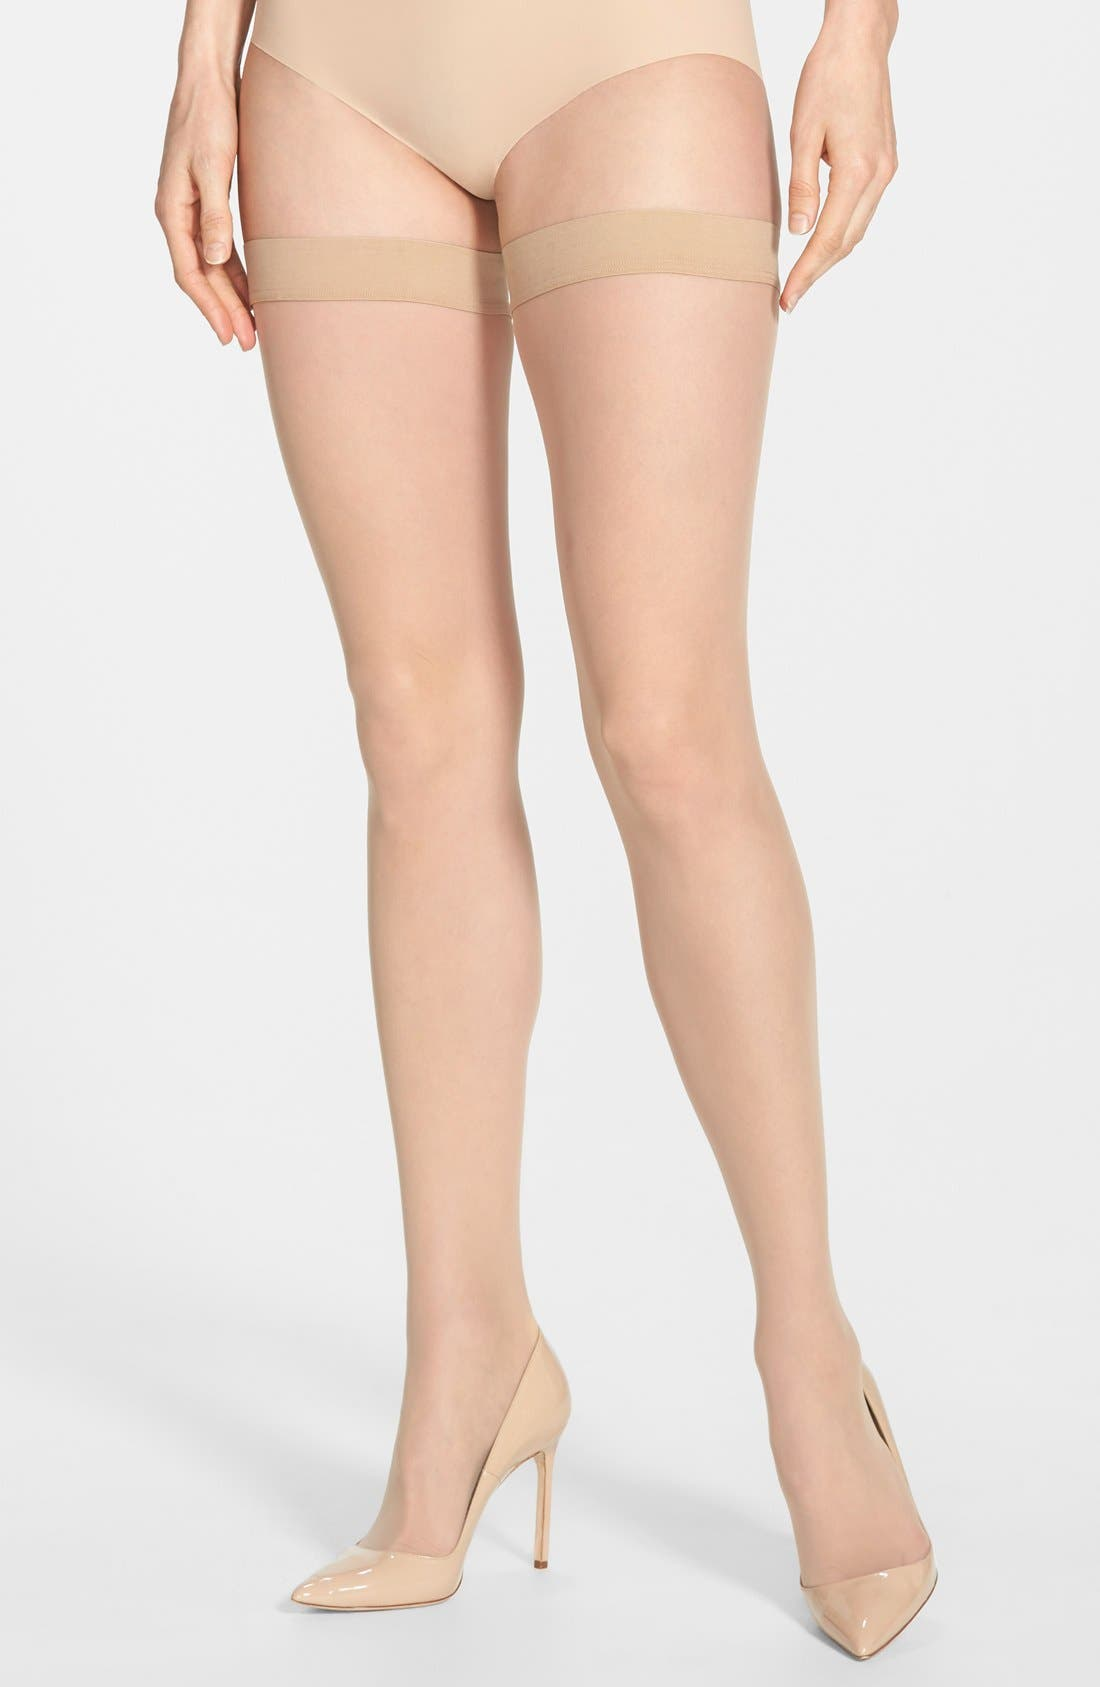 Alternate Image 1 Selected - Wolford Individual 10 Stay-Up Stockings